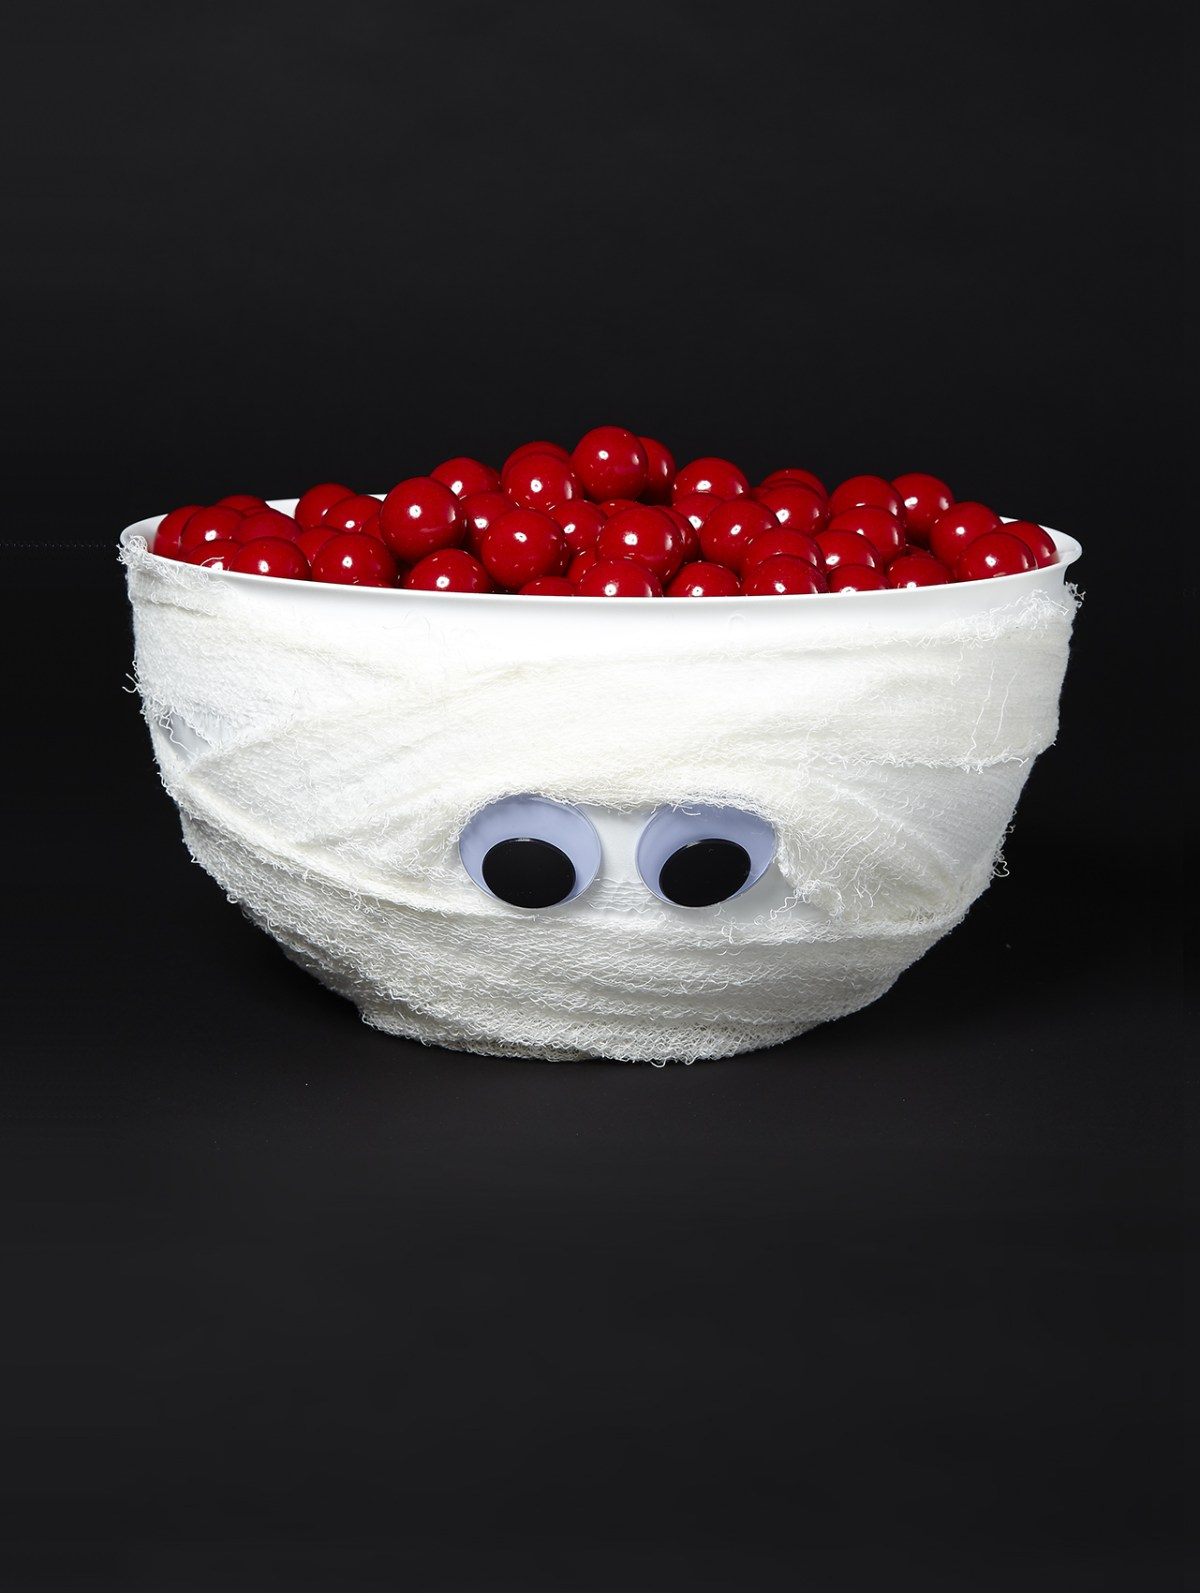 Mummy candy bowls DIY Halloween Candy Bowls You Can Serve For Halloween Treats